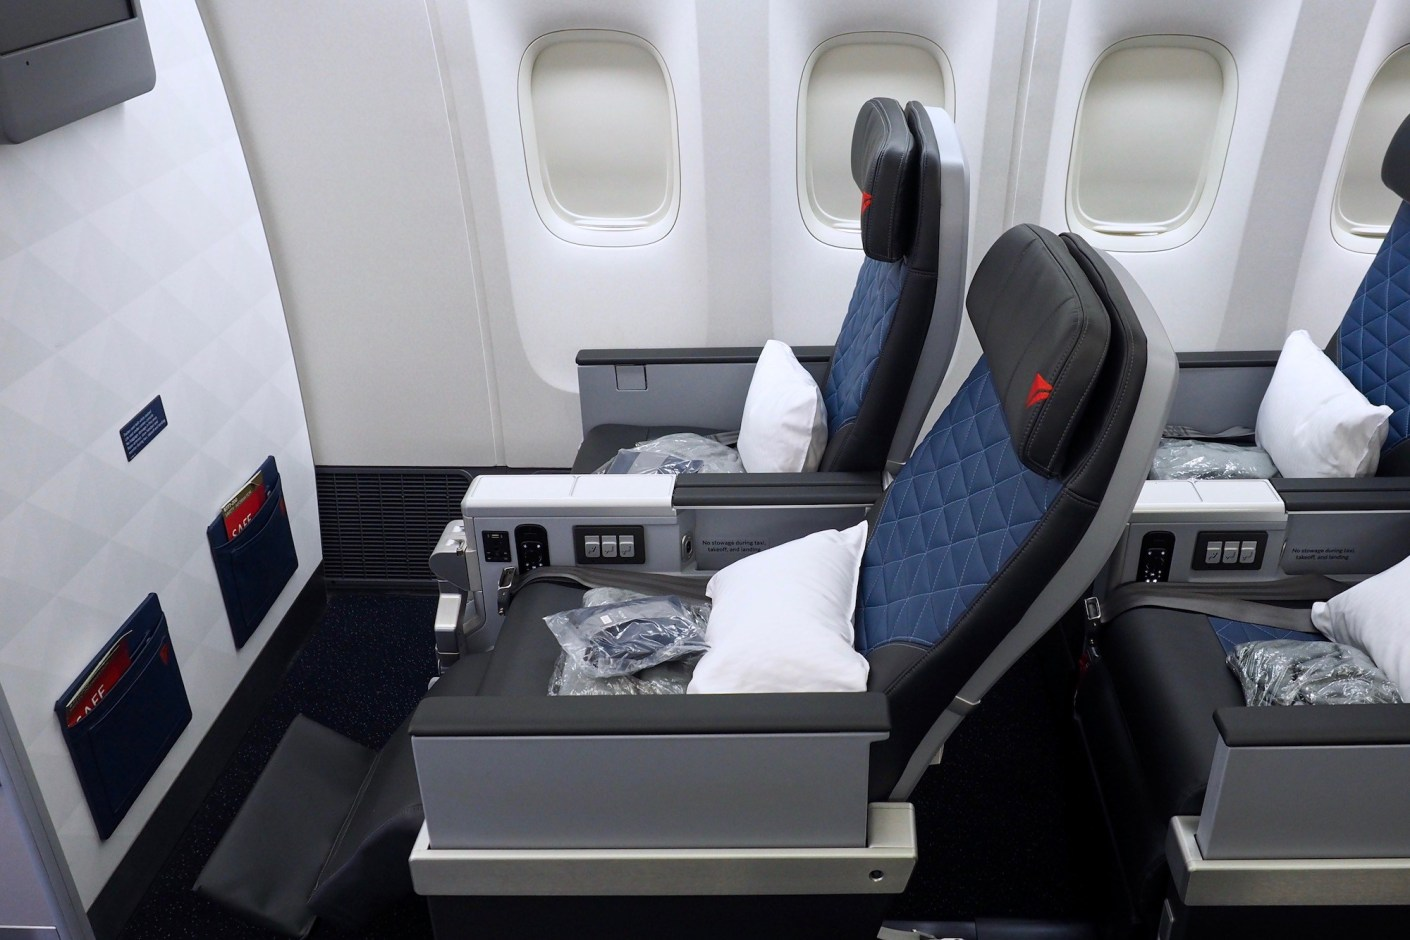 A man missed flights and reconstructed airplane cabin at home. He even bought passengers seats!